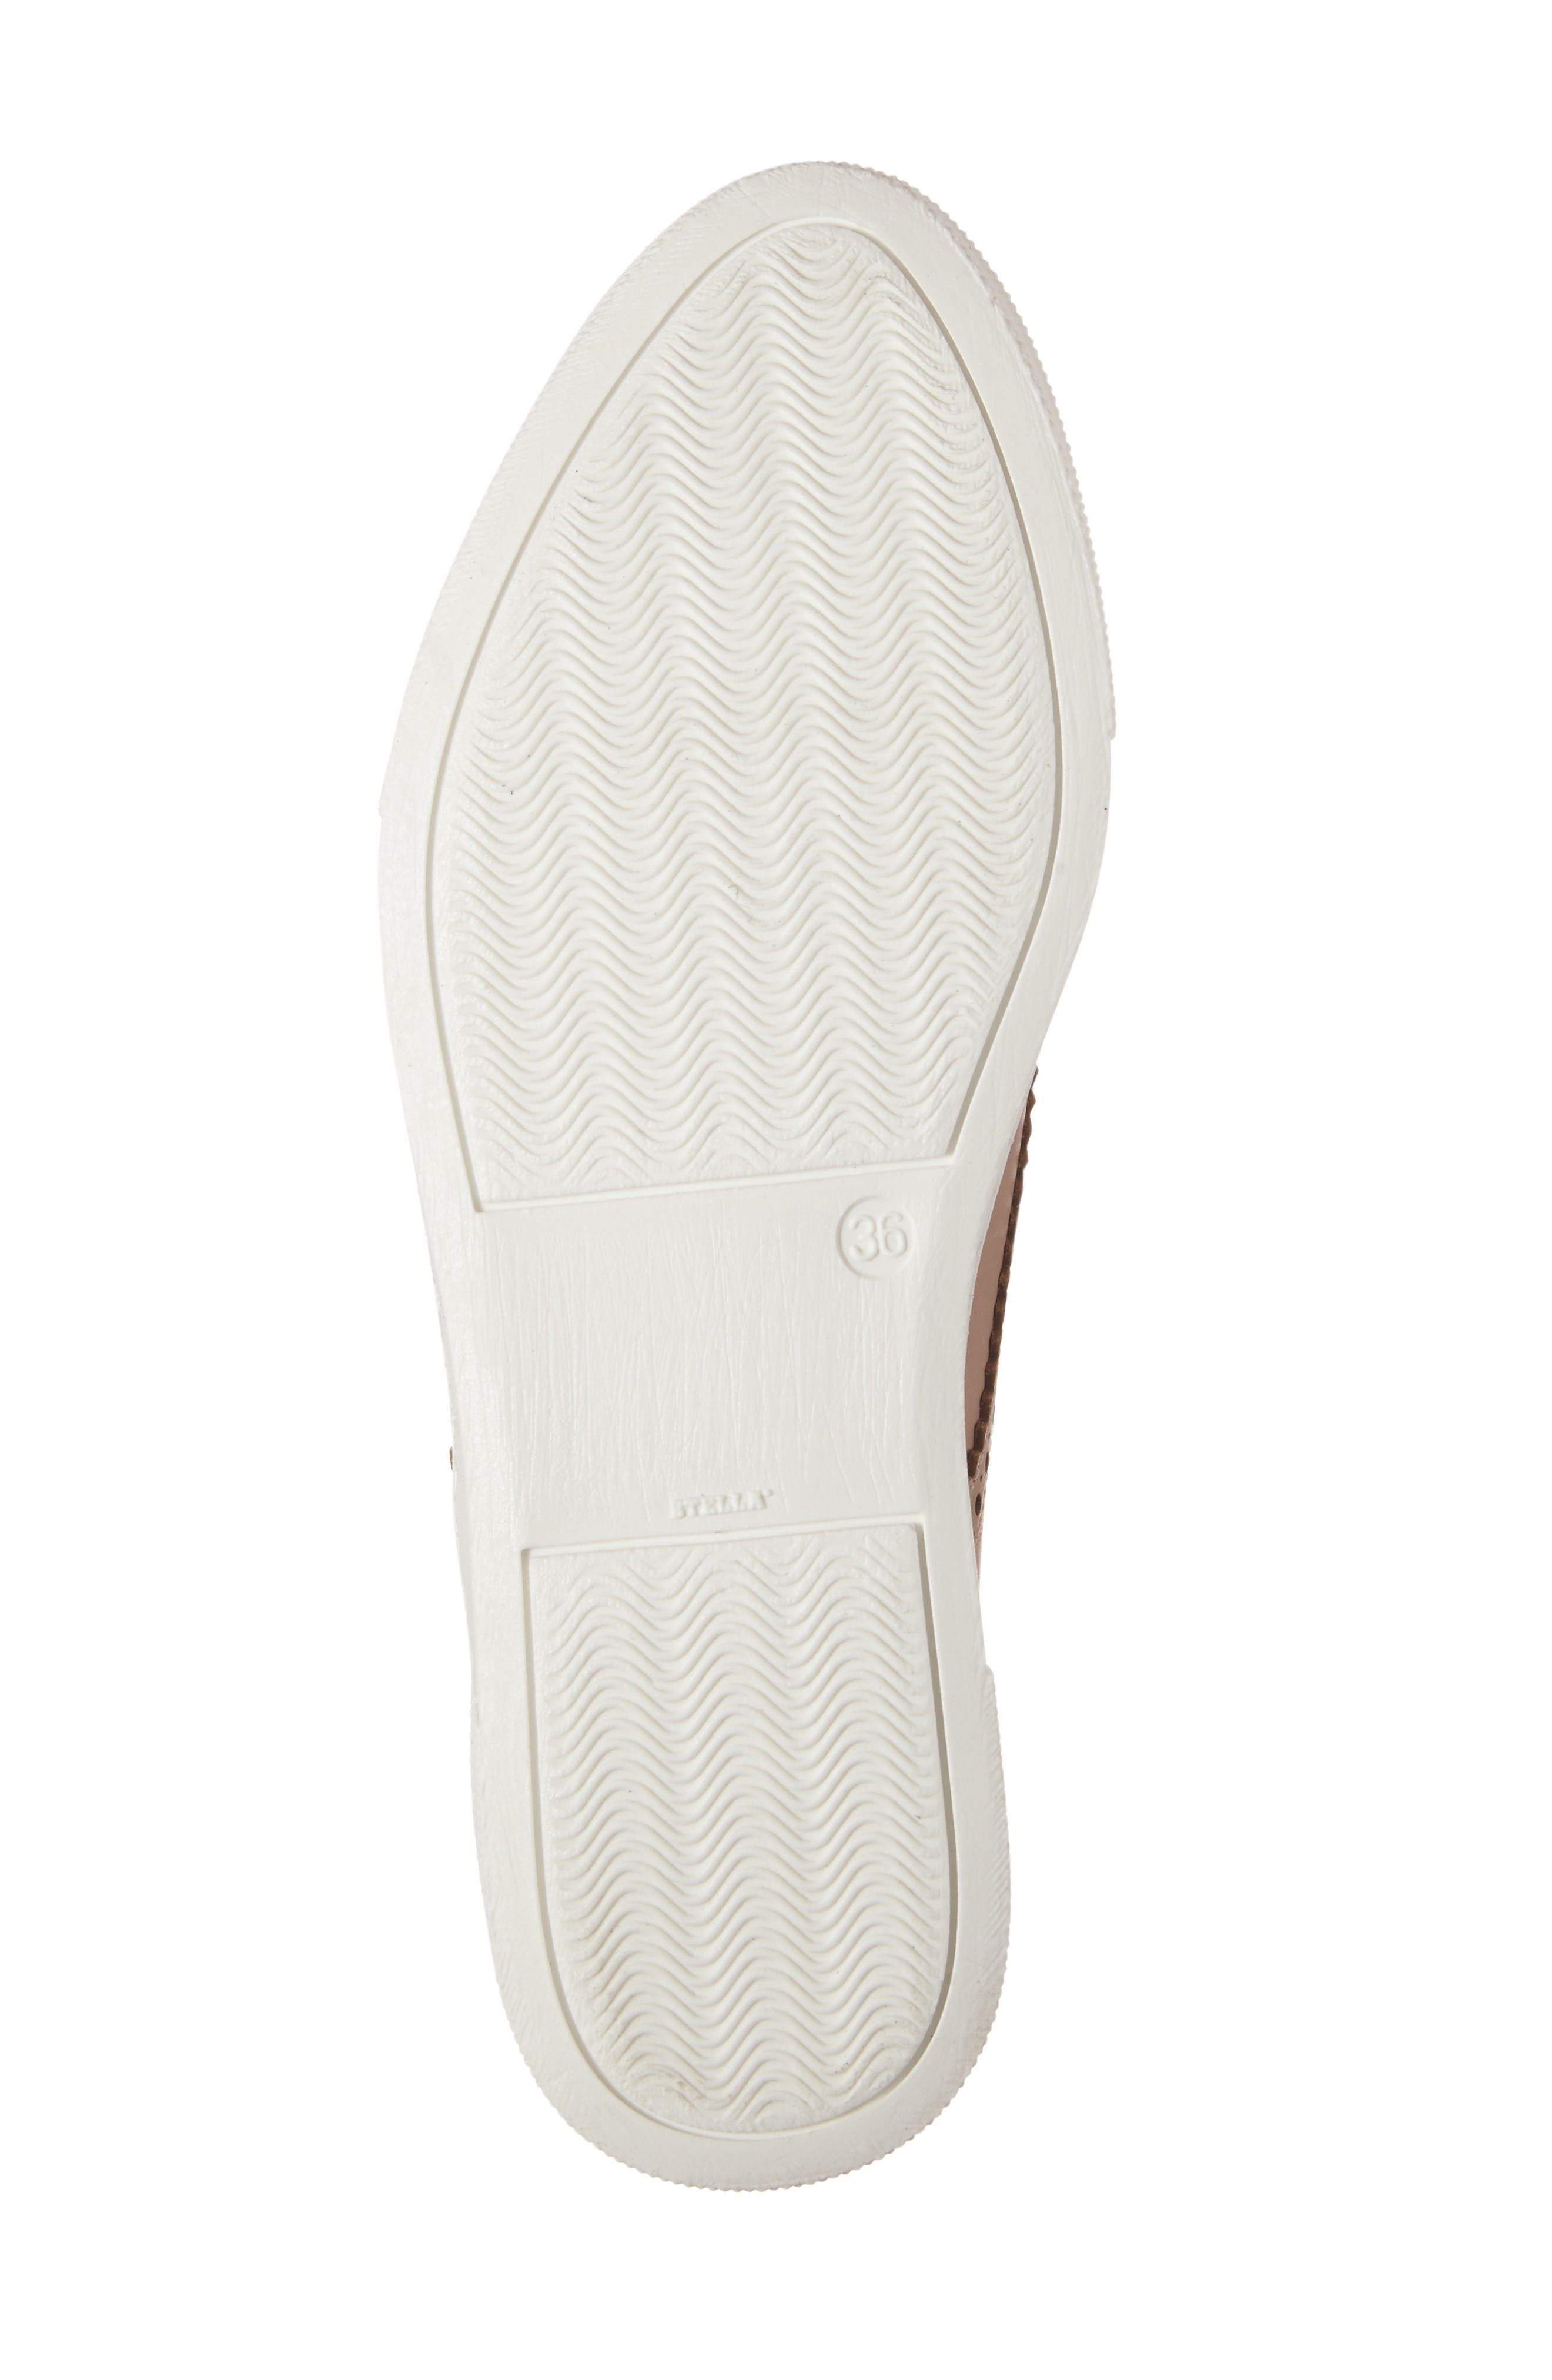 Alternate Image 4  - Shellys London Kimmie Perforated Platform Sneaker (Women)